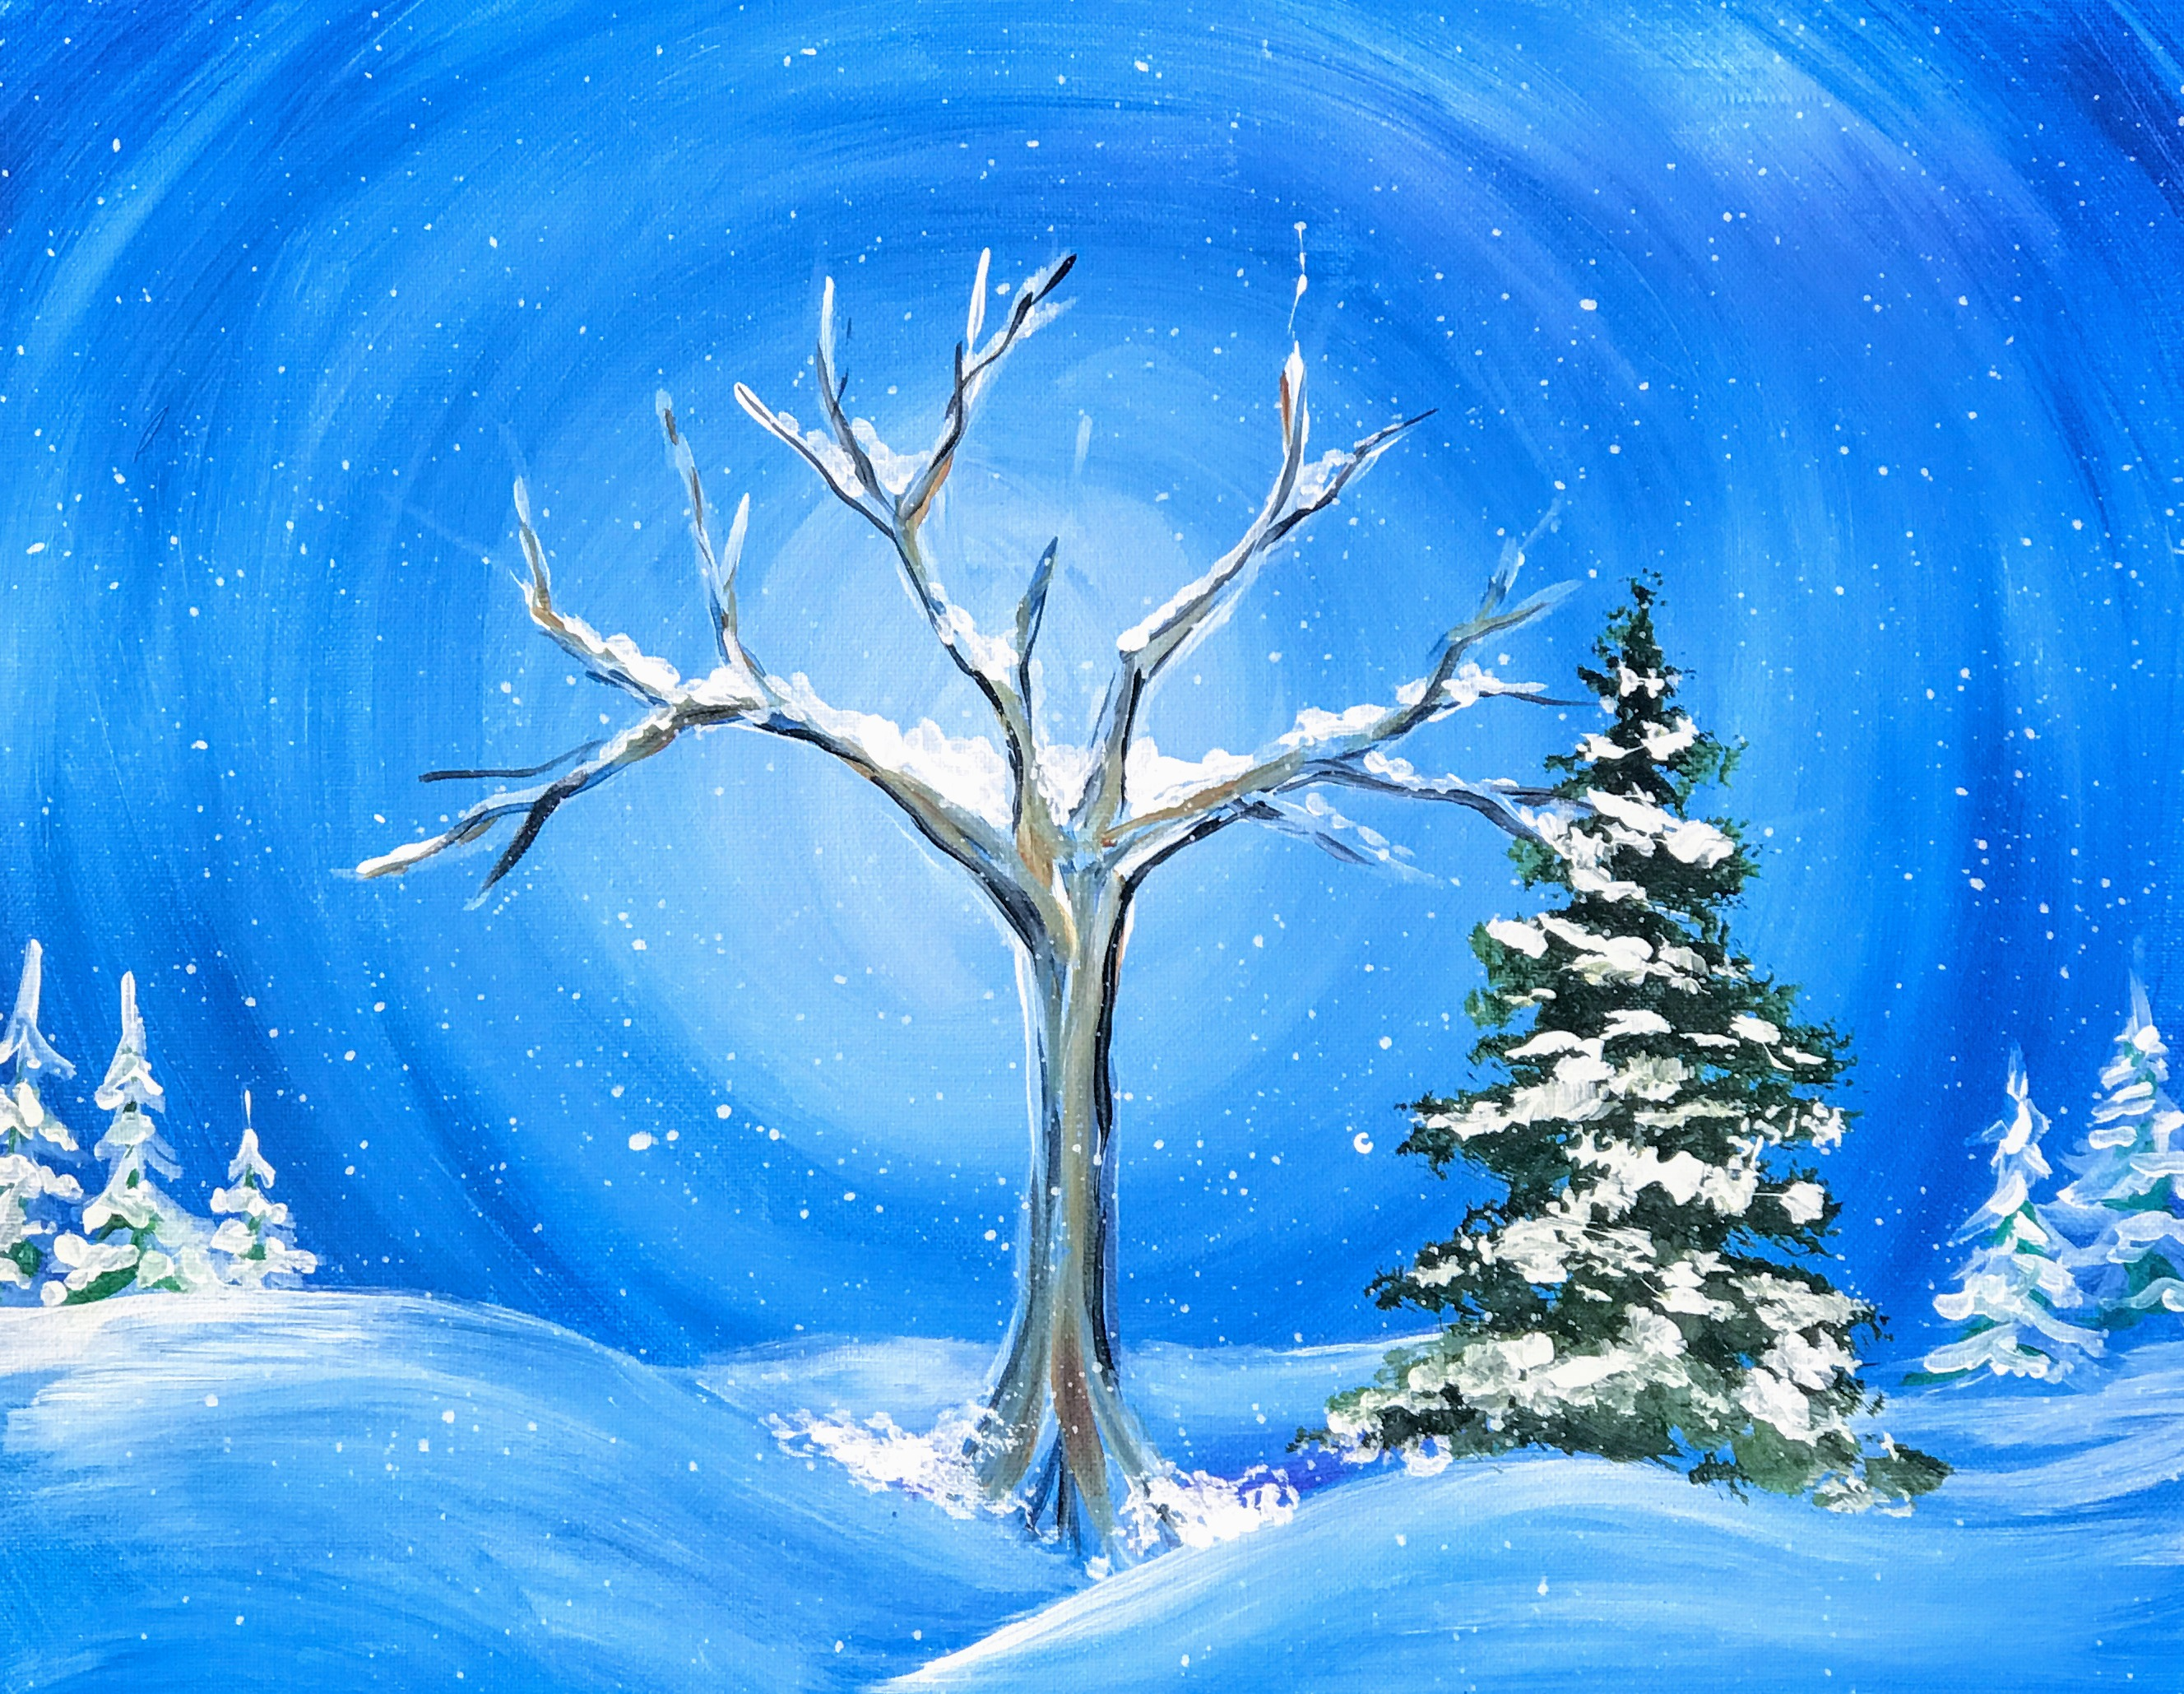 Lonely Winter Landscape | The Loaded Brush Paint & Sip Classes | loadedbrushpdx.com